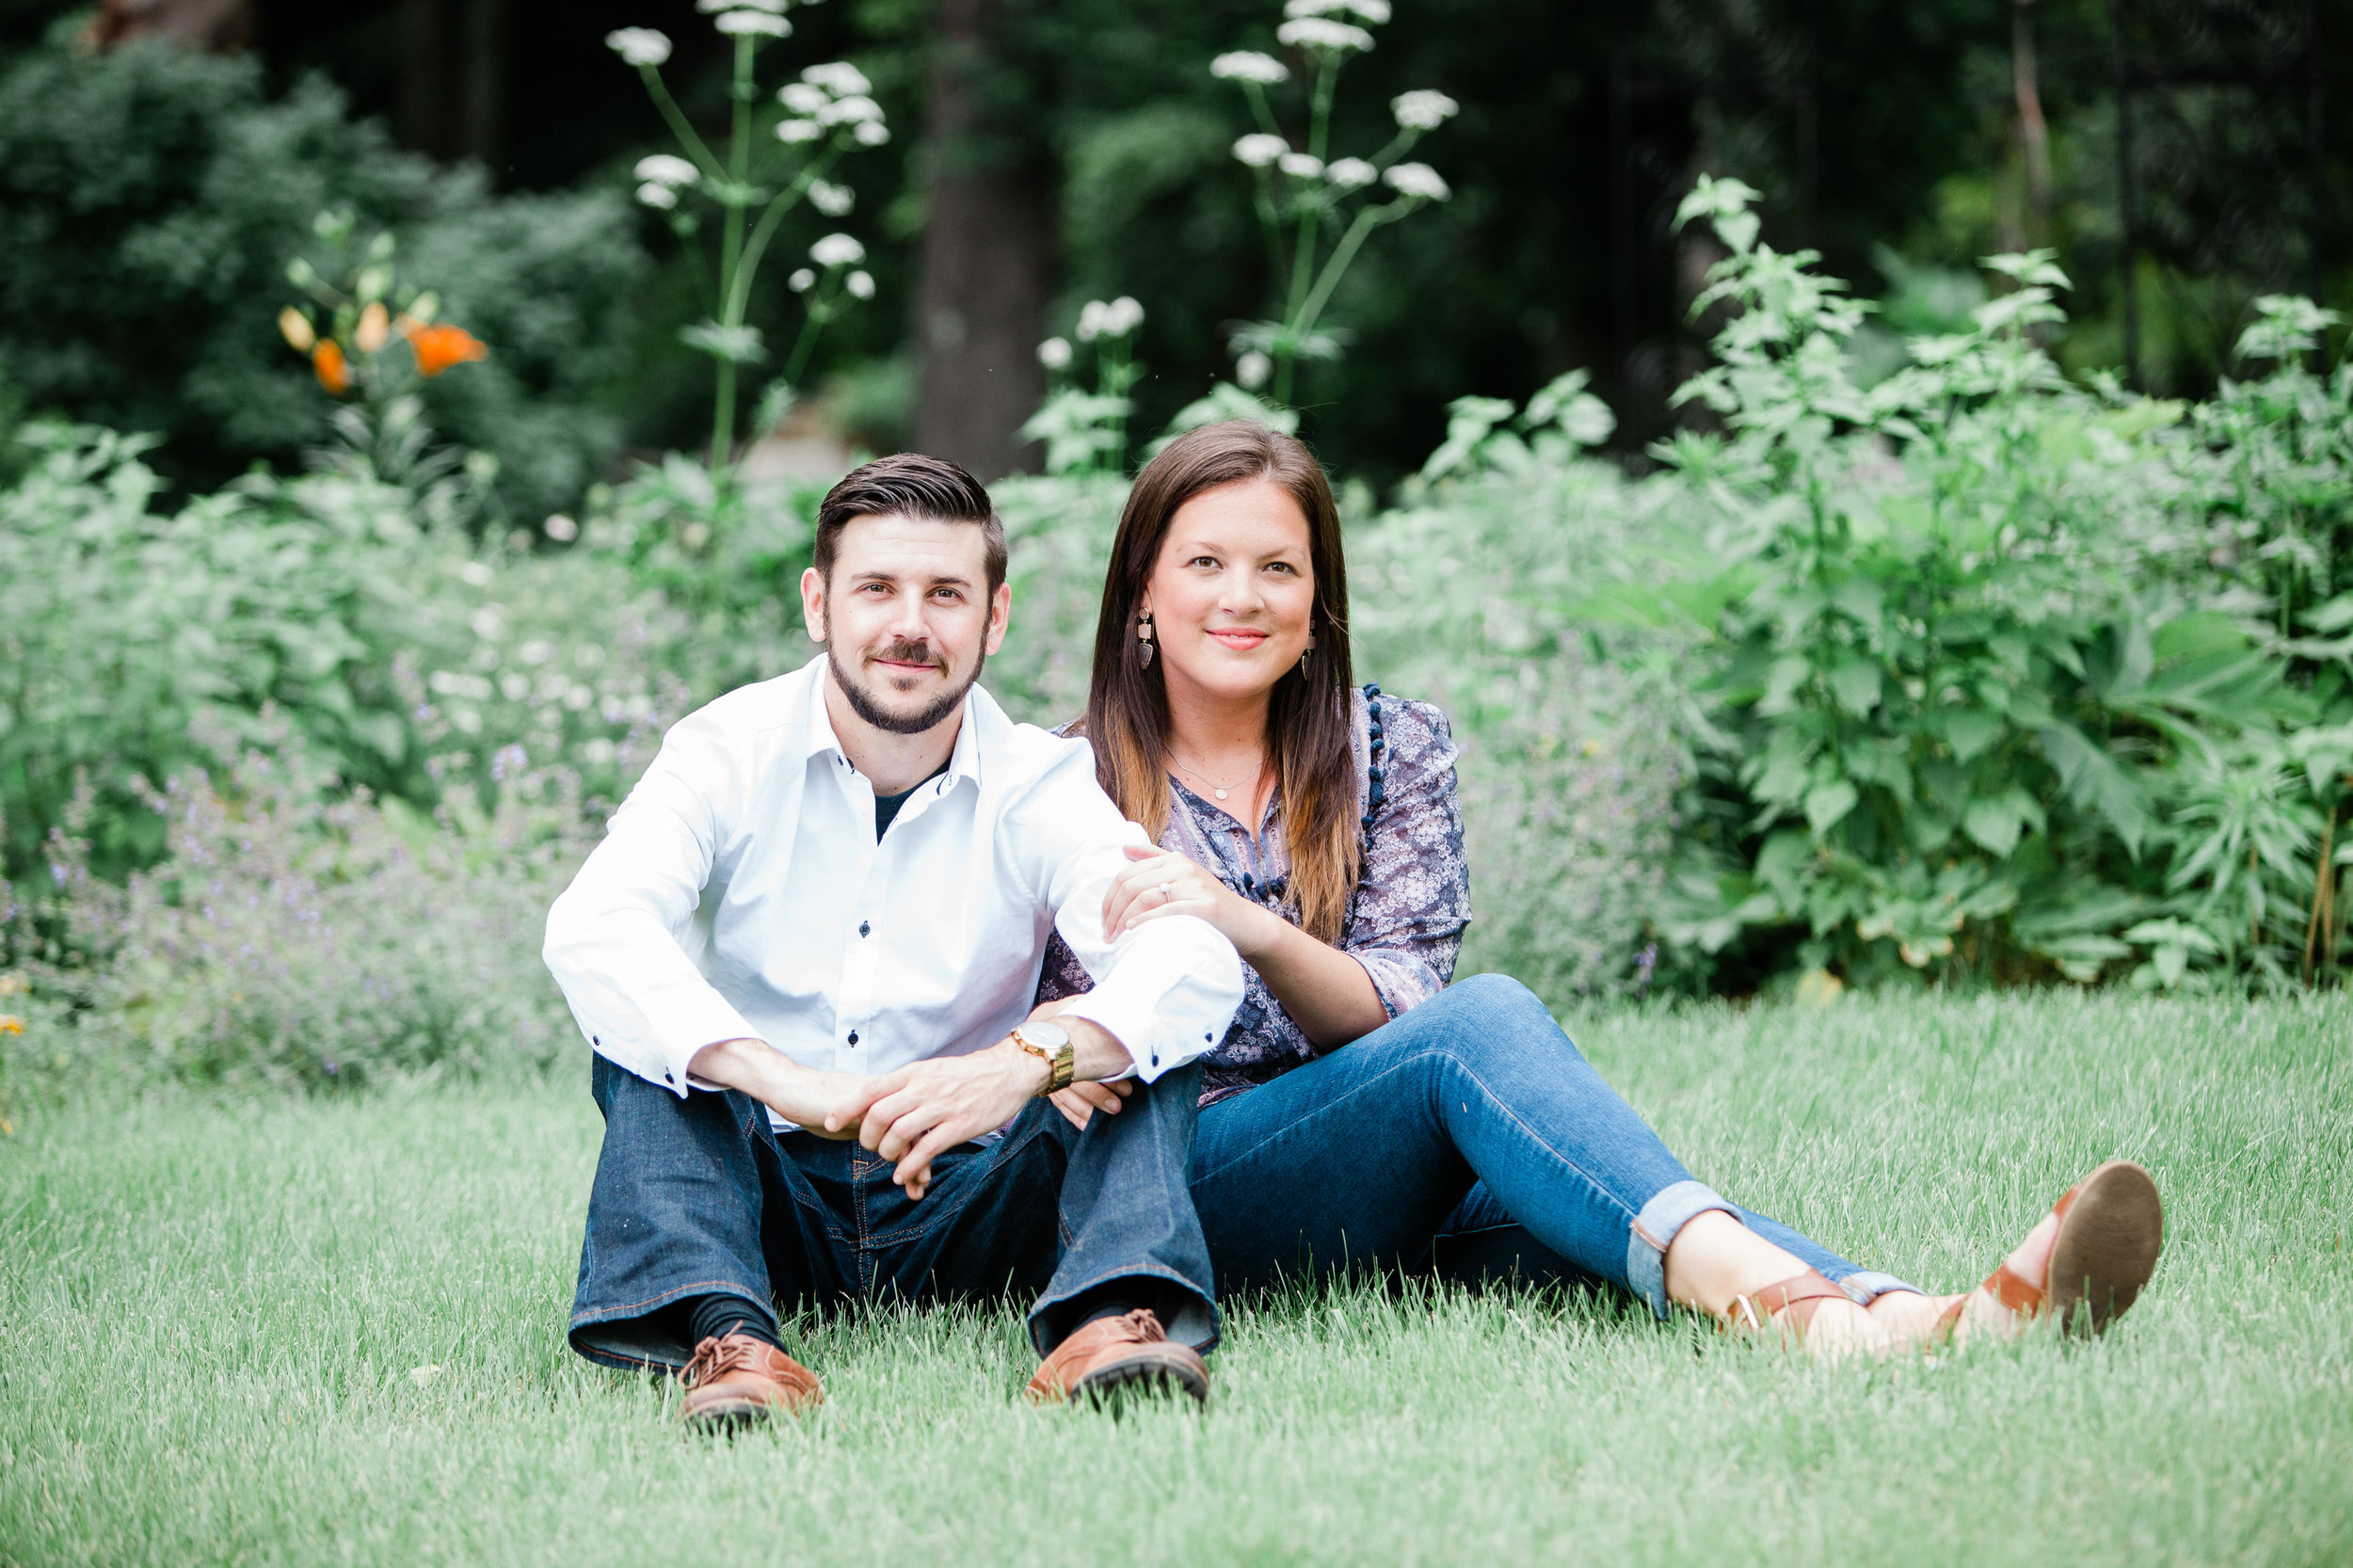 meadowlark_botanical_gardens_engagements-3617.jpg